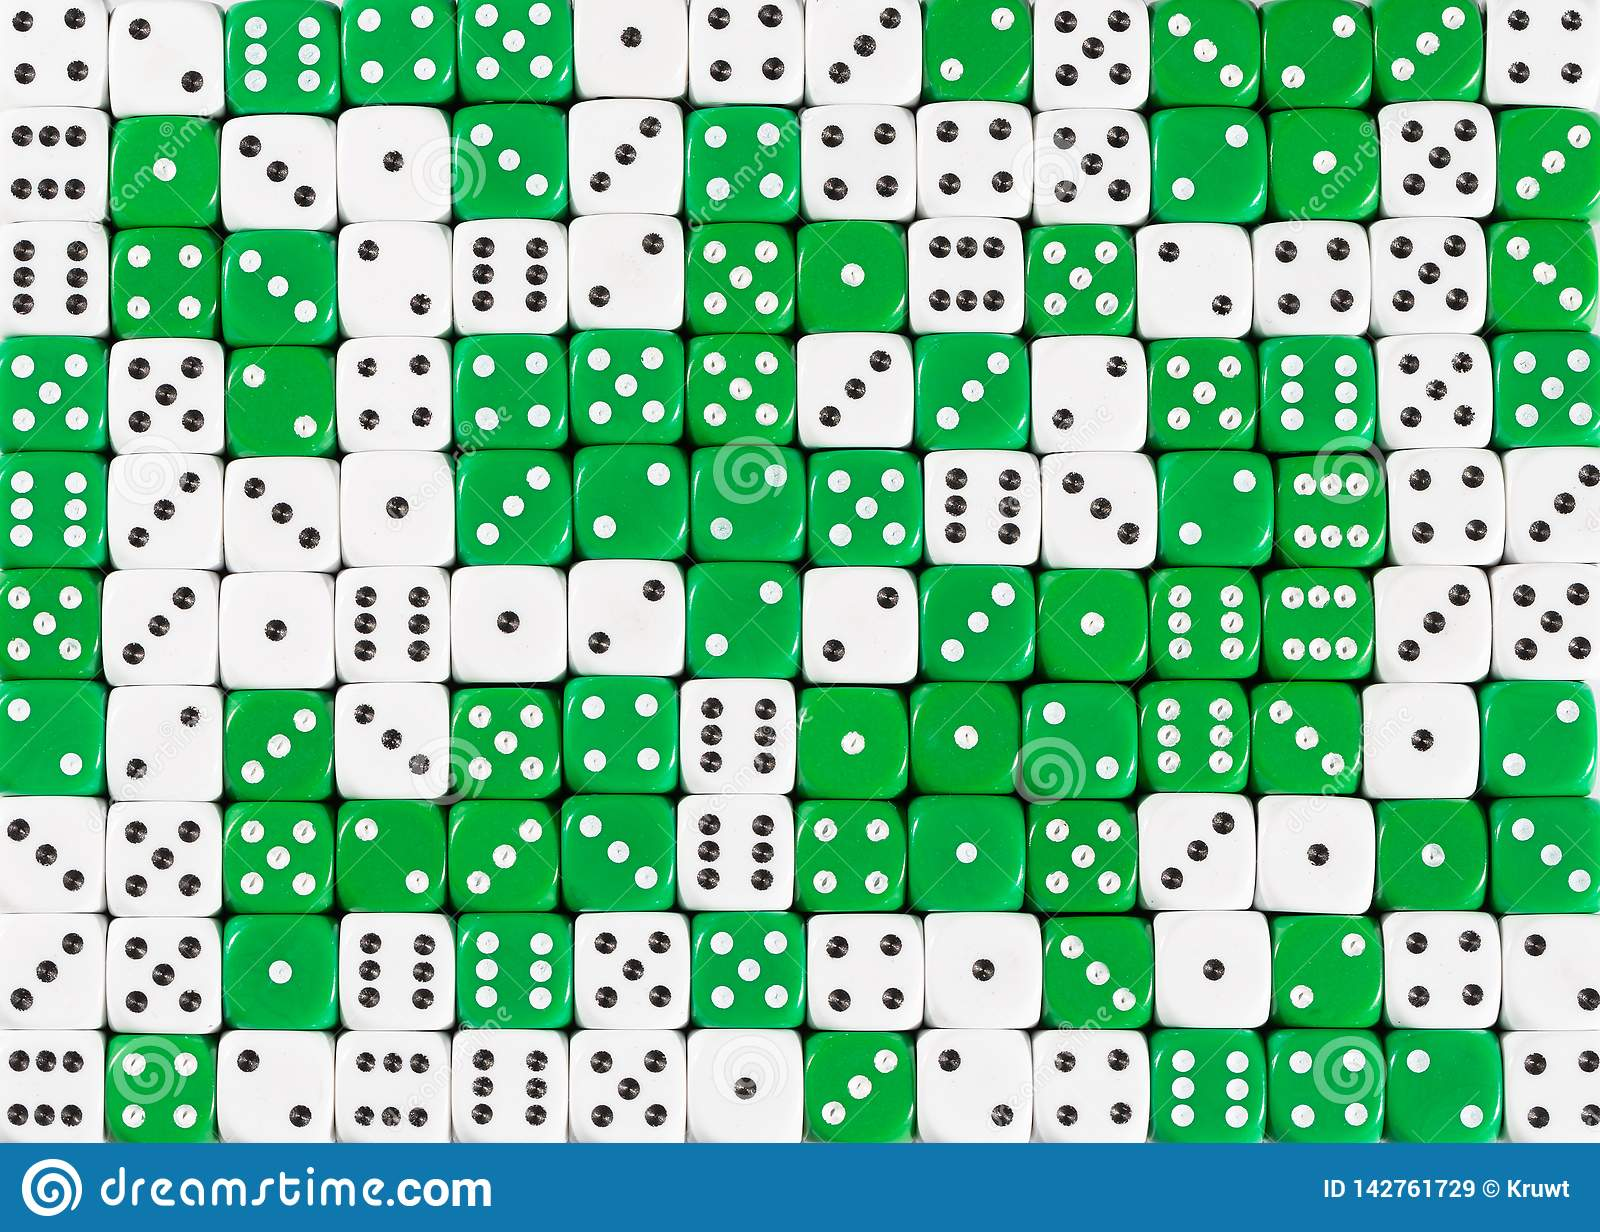 Background of 140 random ordered white and green dices